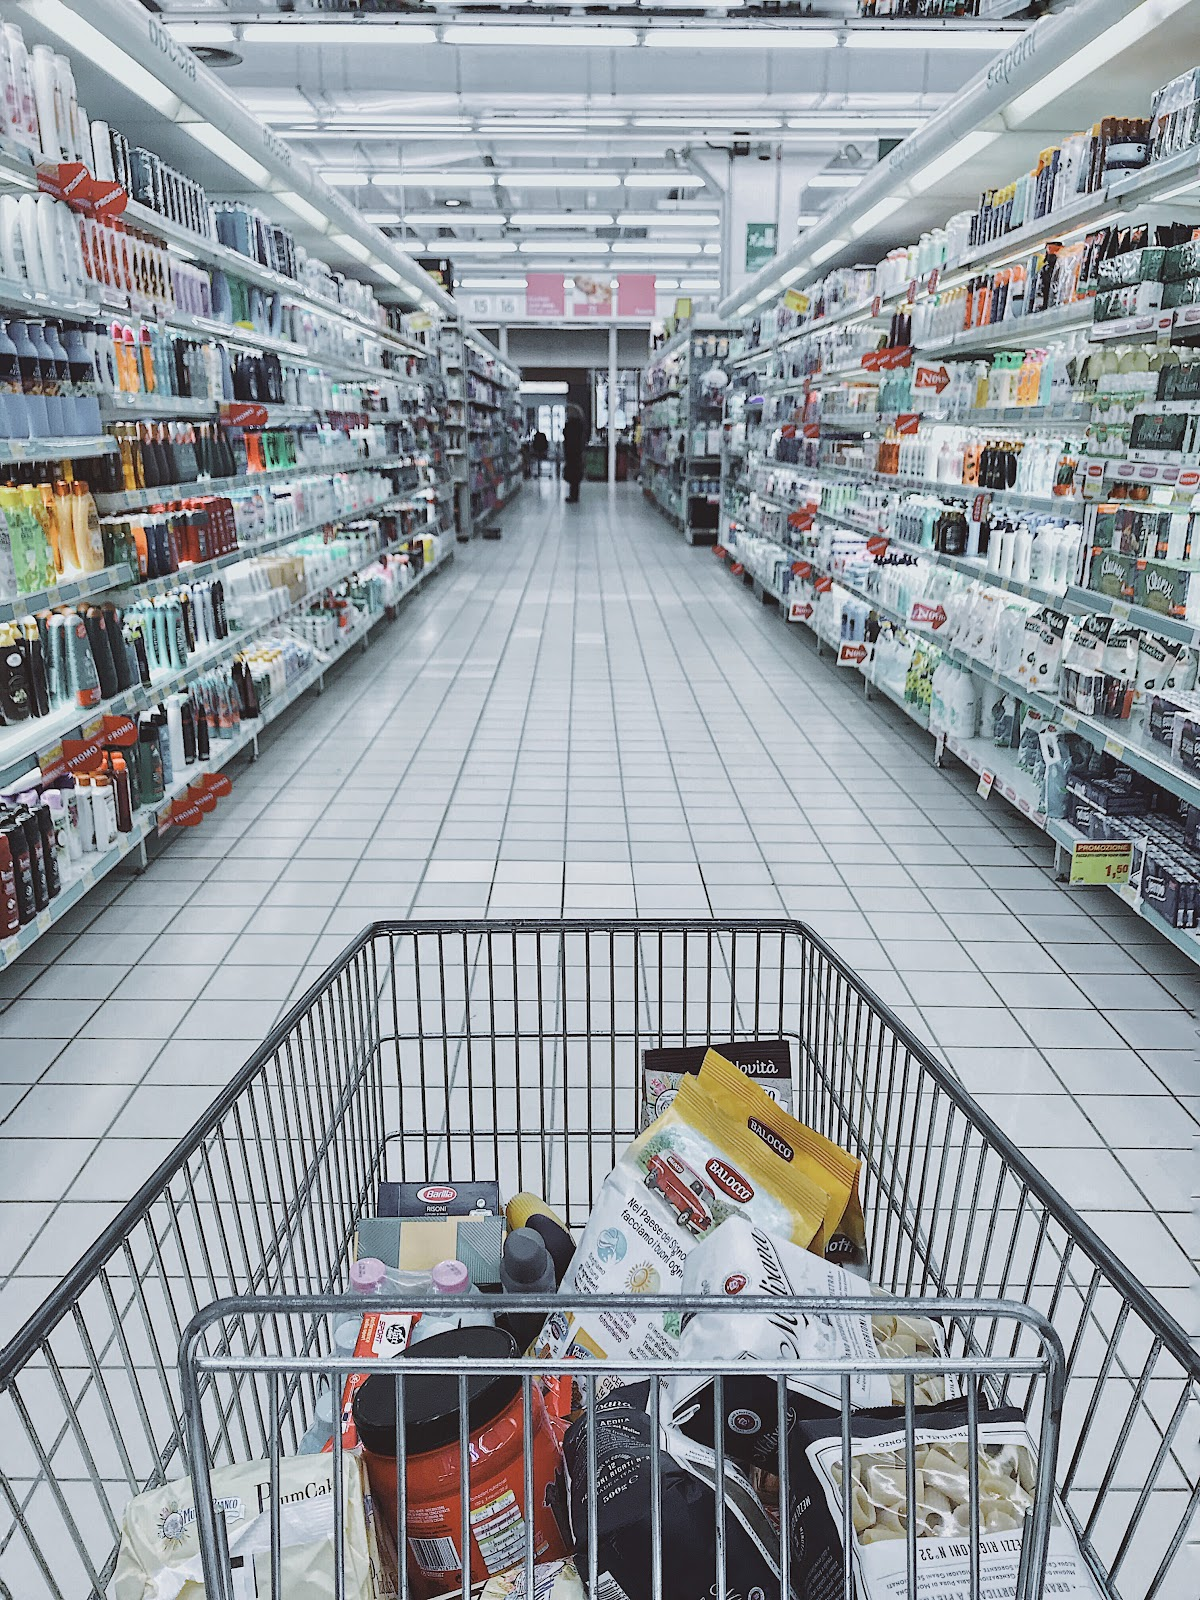 shopping-cart-with-items